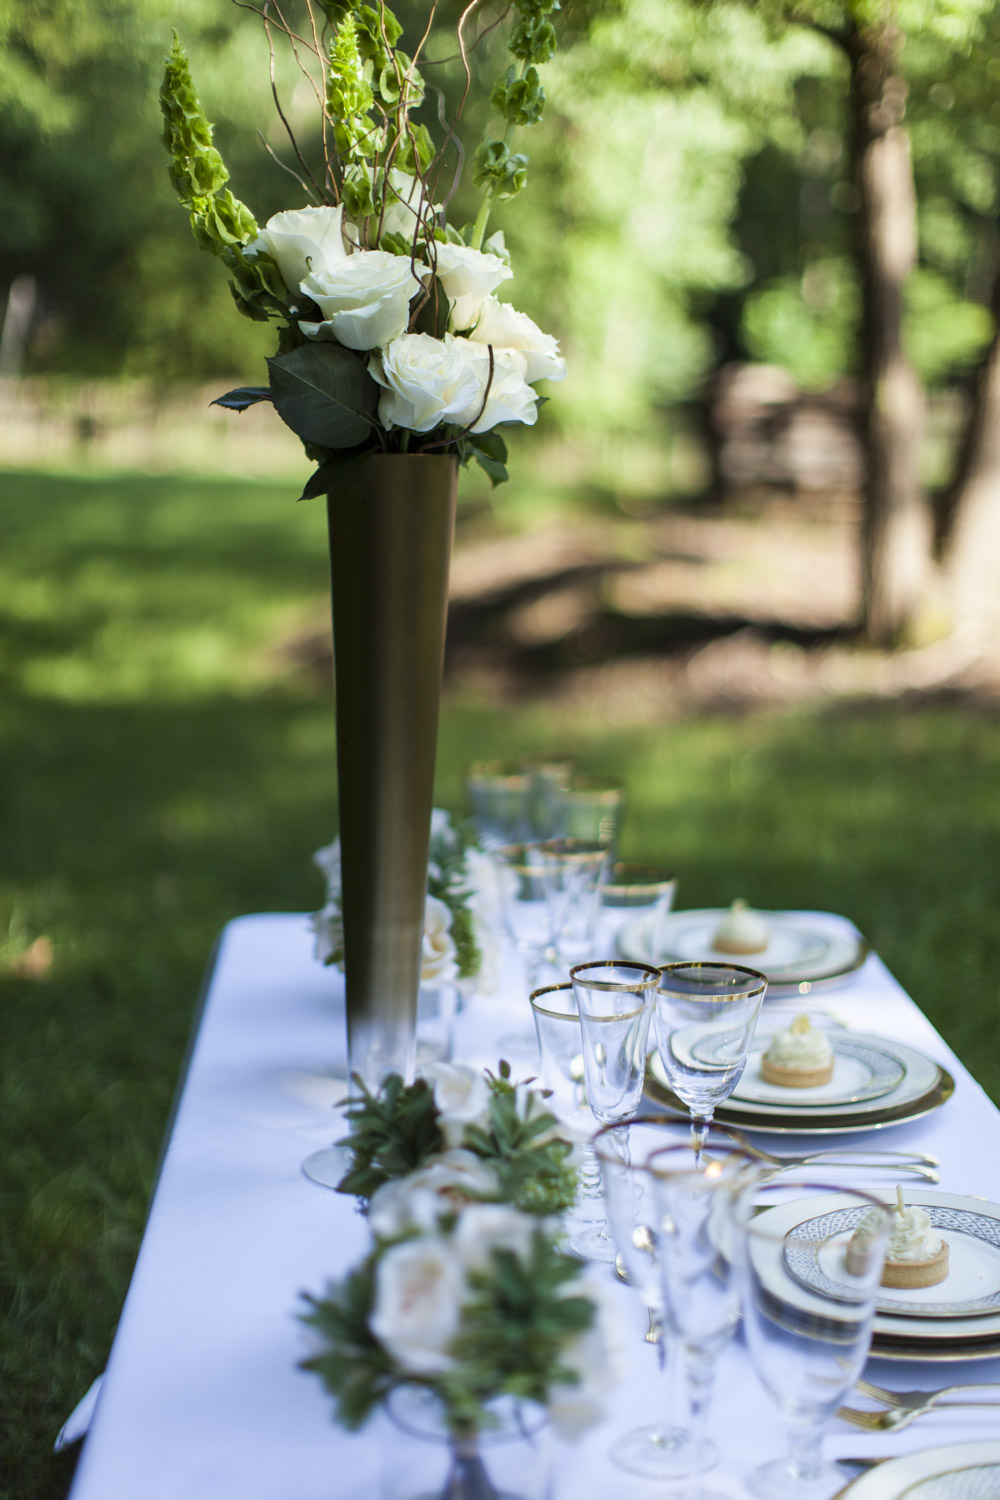 TableSettings-8260.JPG